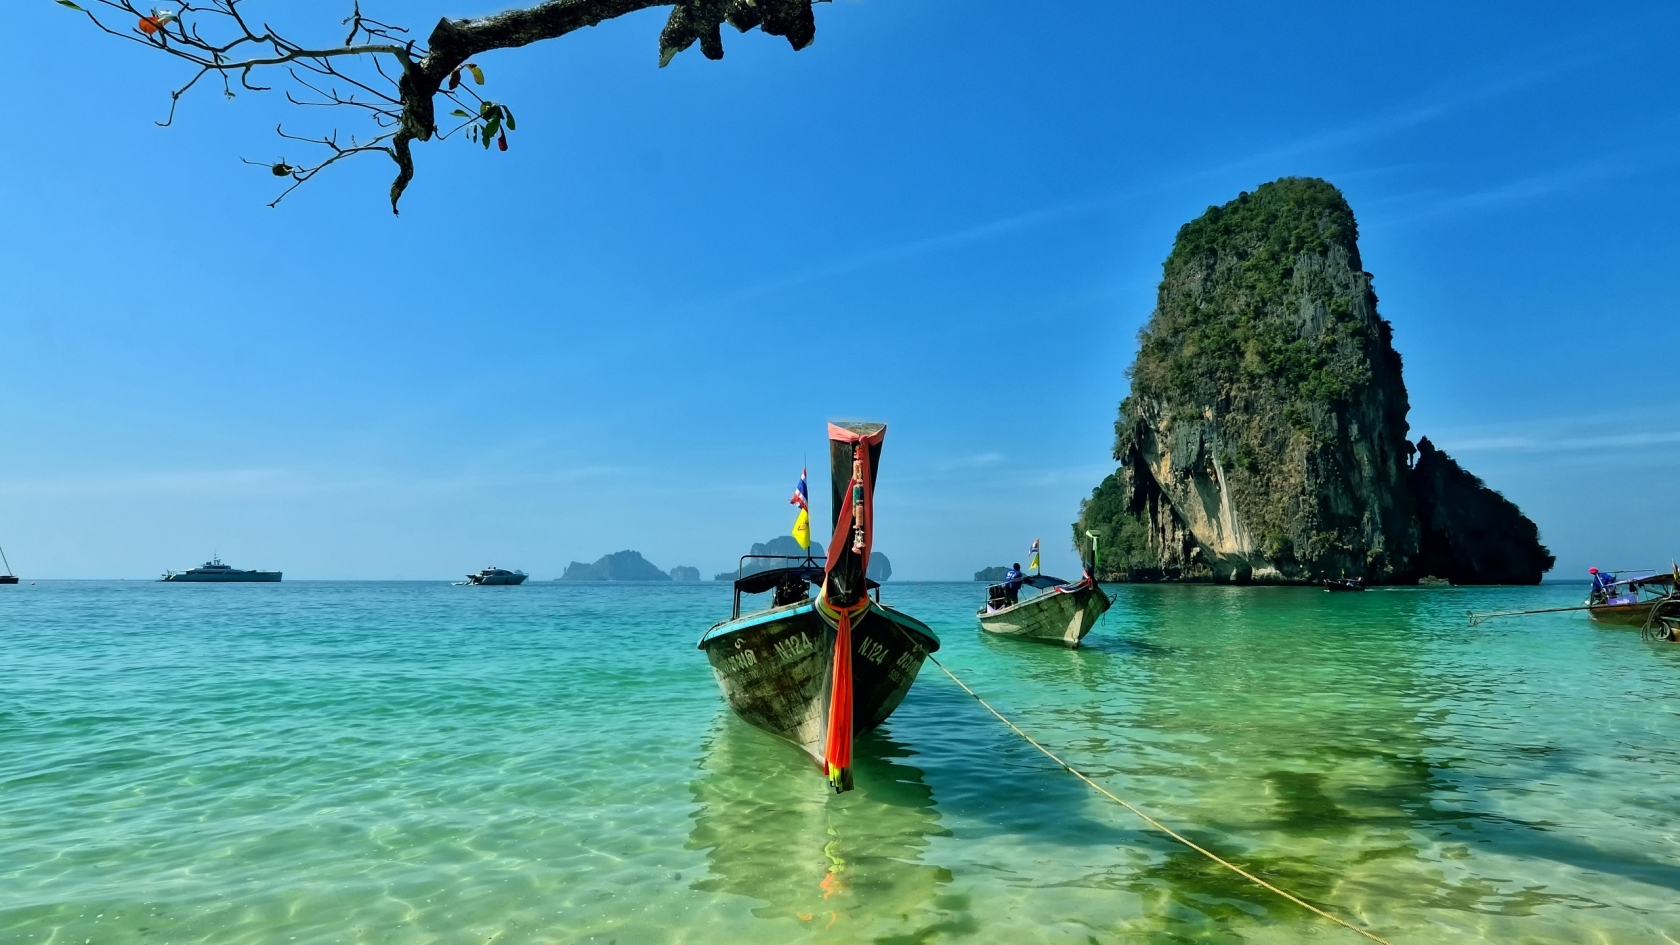 Railay Beach Thailand for 1680 x 945 HDTV resolution